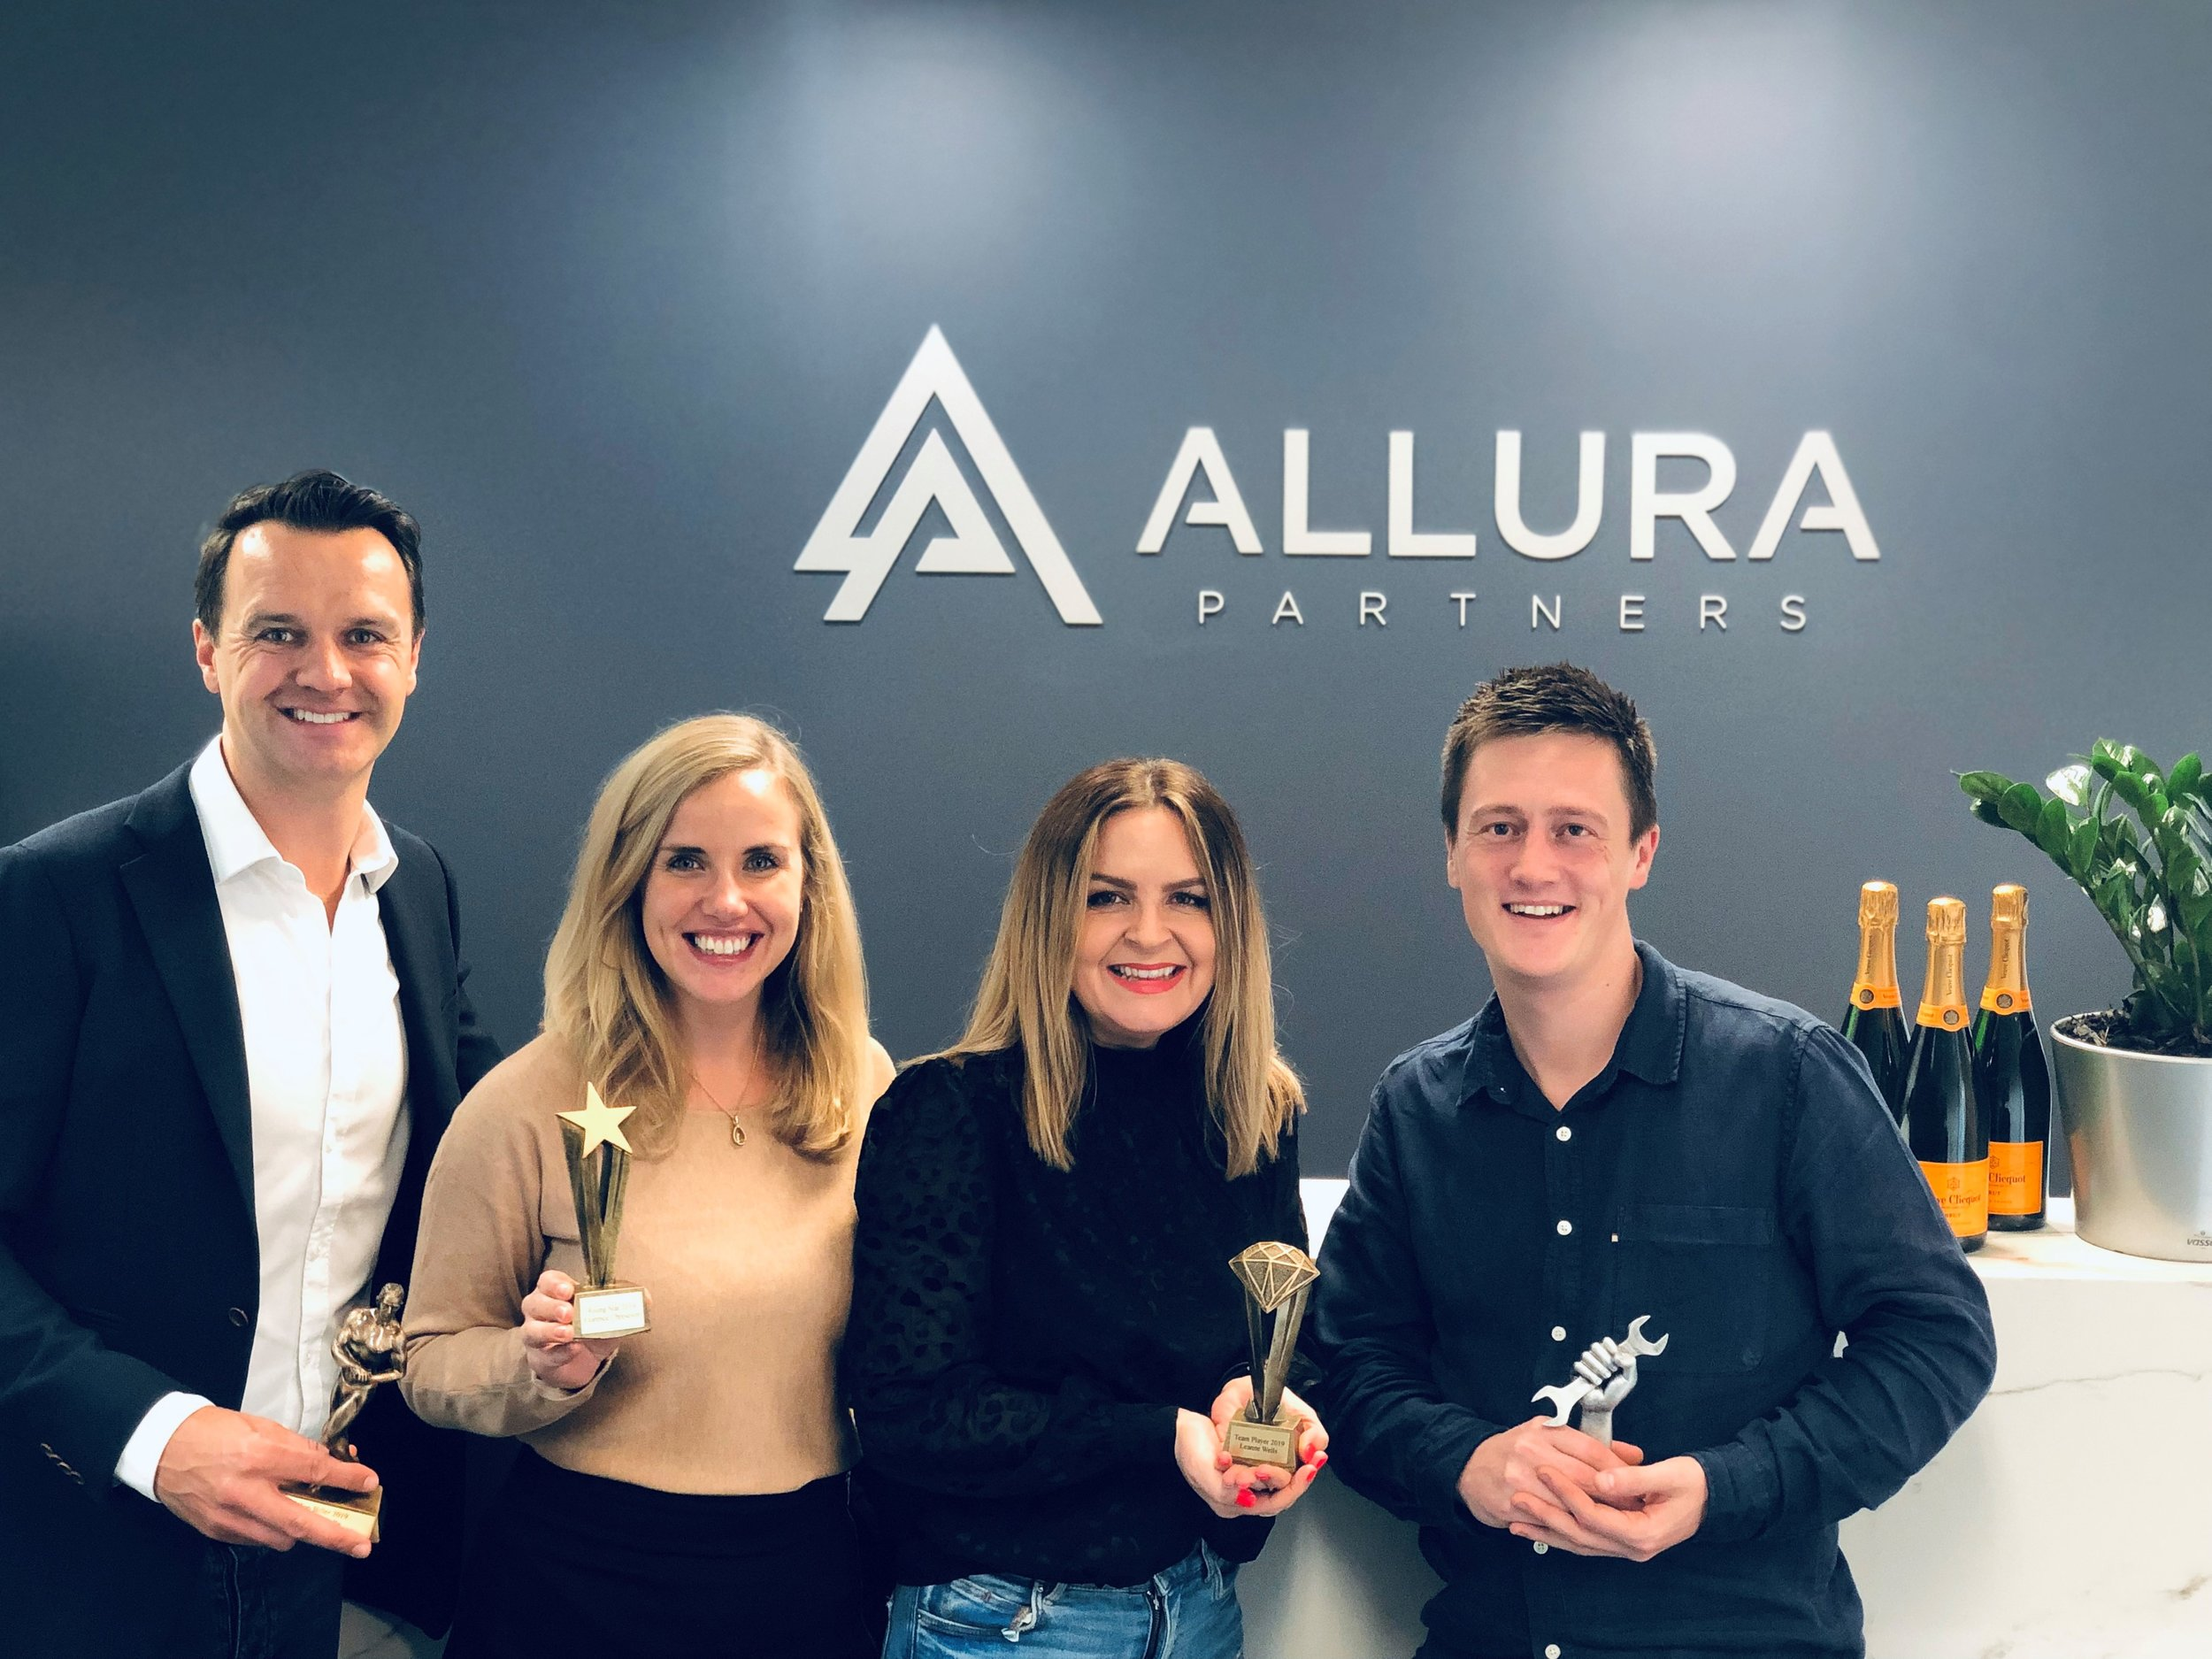 Allura Partners Winners.jpg